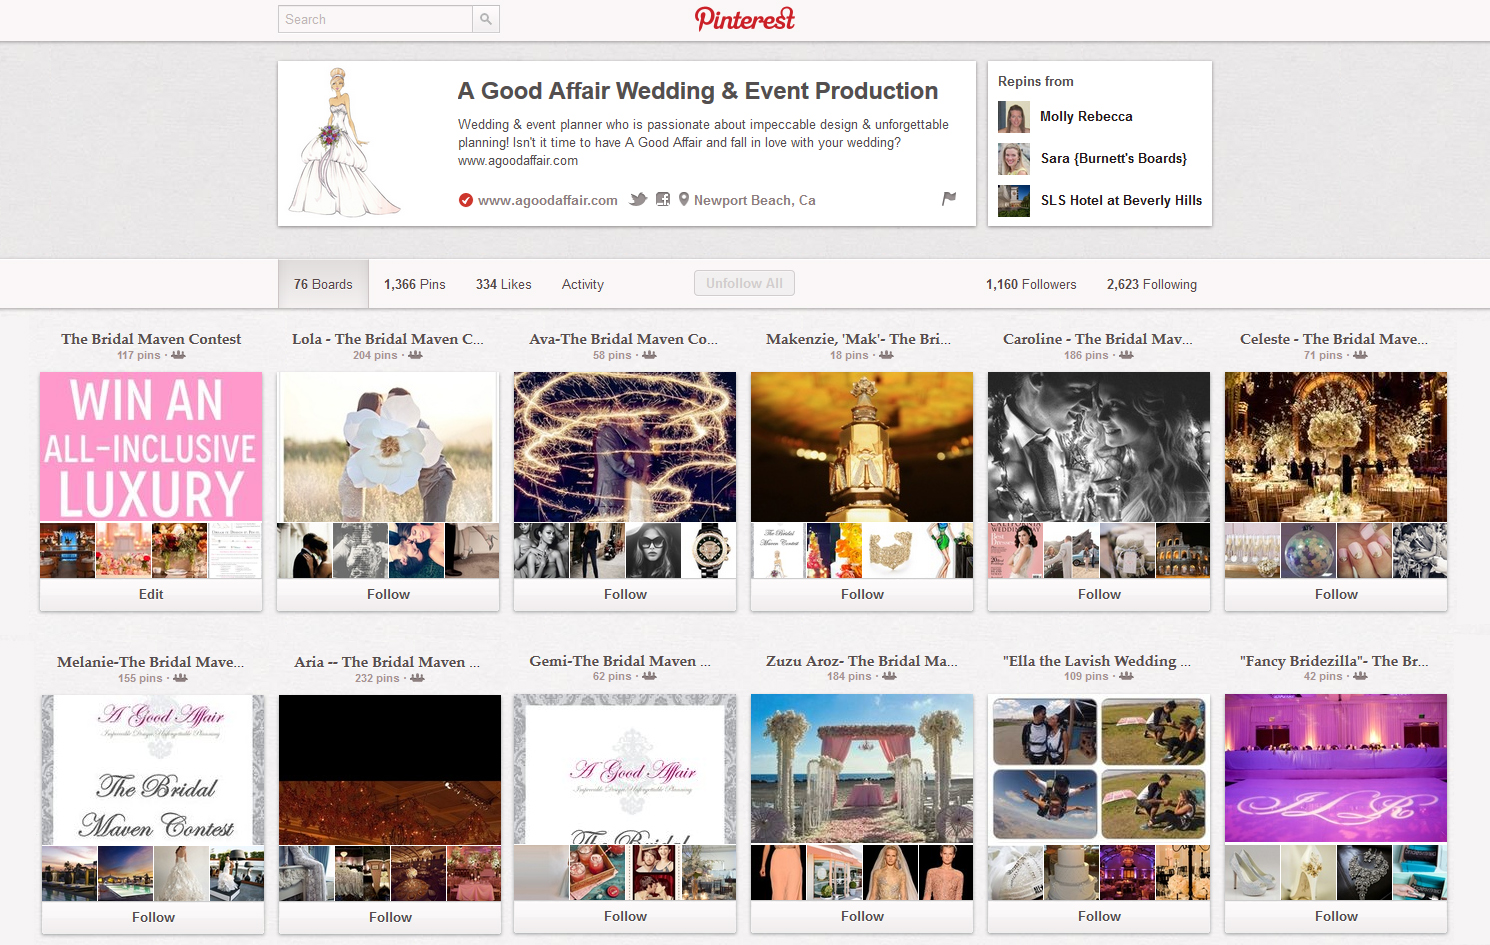 A Good Affair Wedding & Event Production, Bridal Maven Pinterest Contest